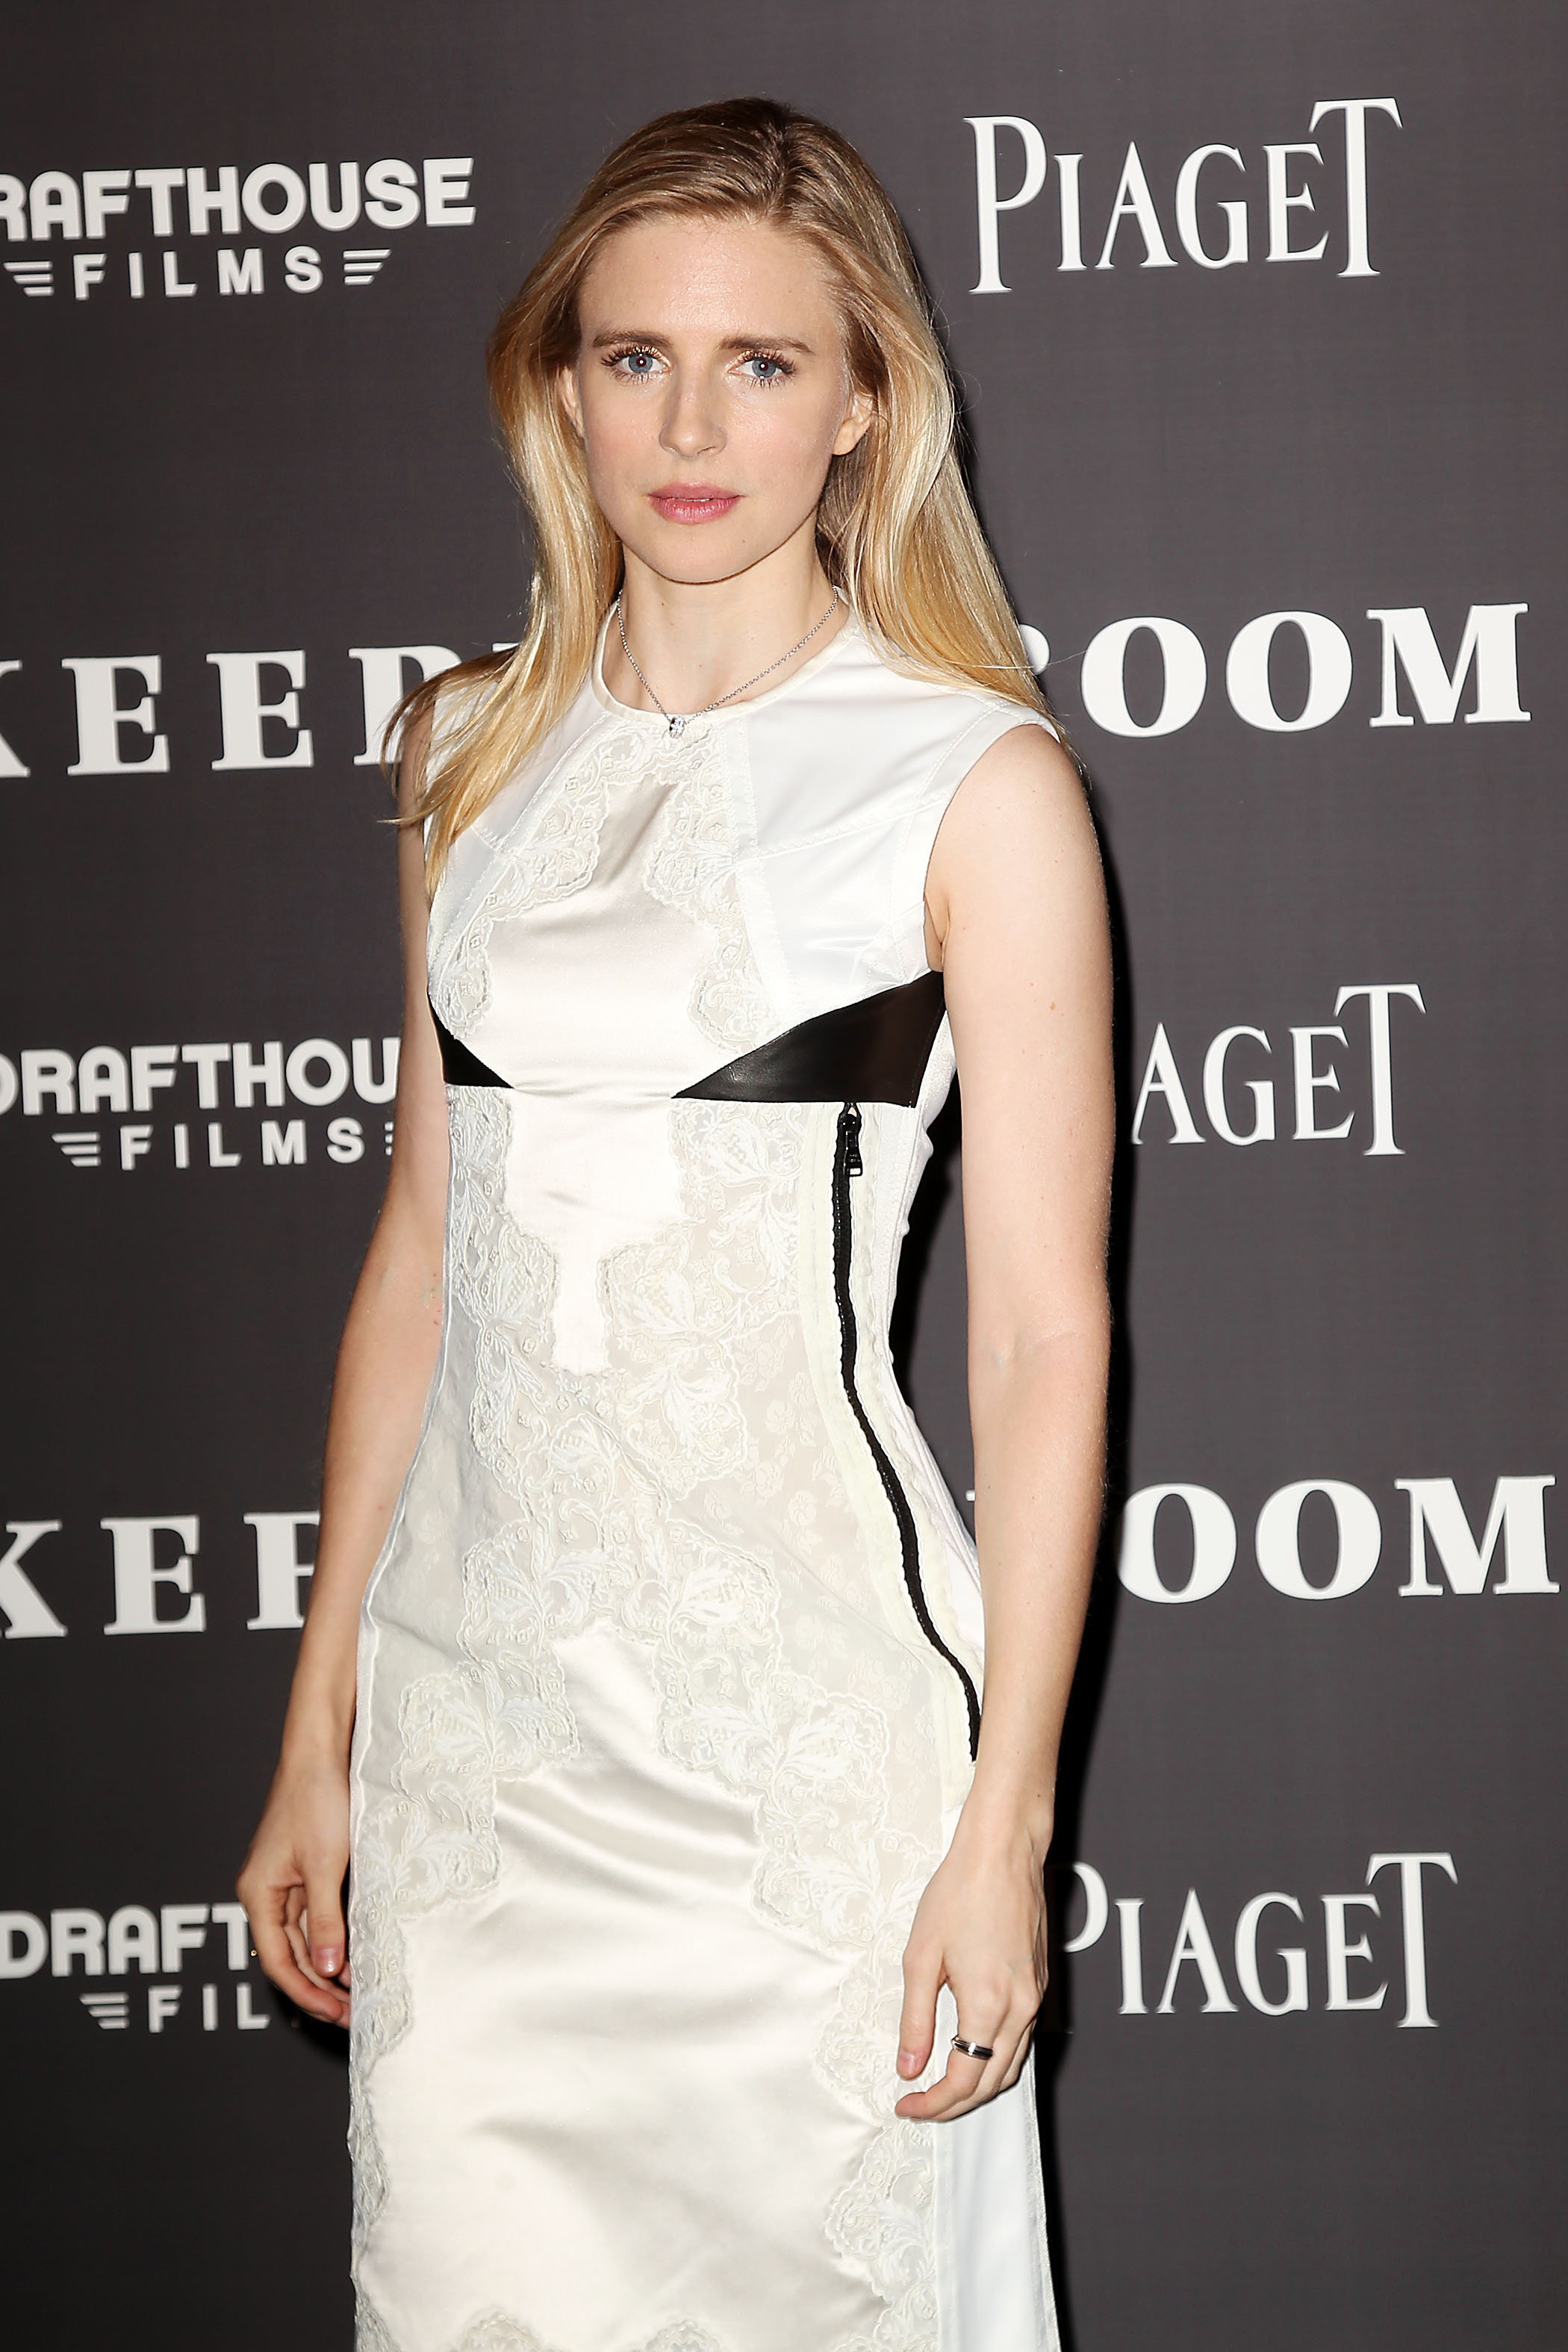 Brit Marling at an event for The Keeping Room (2014)